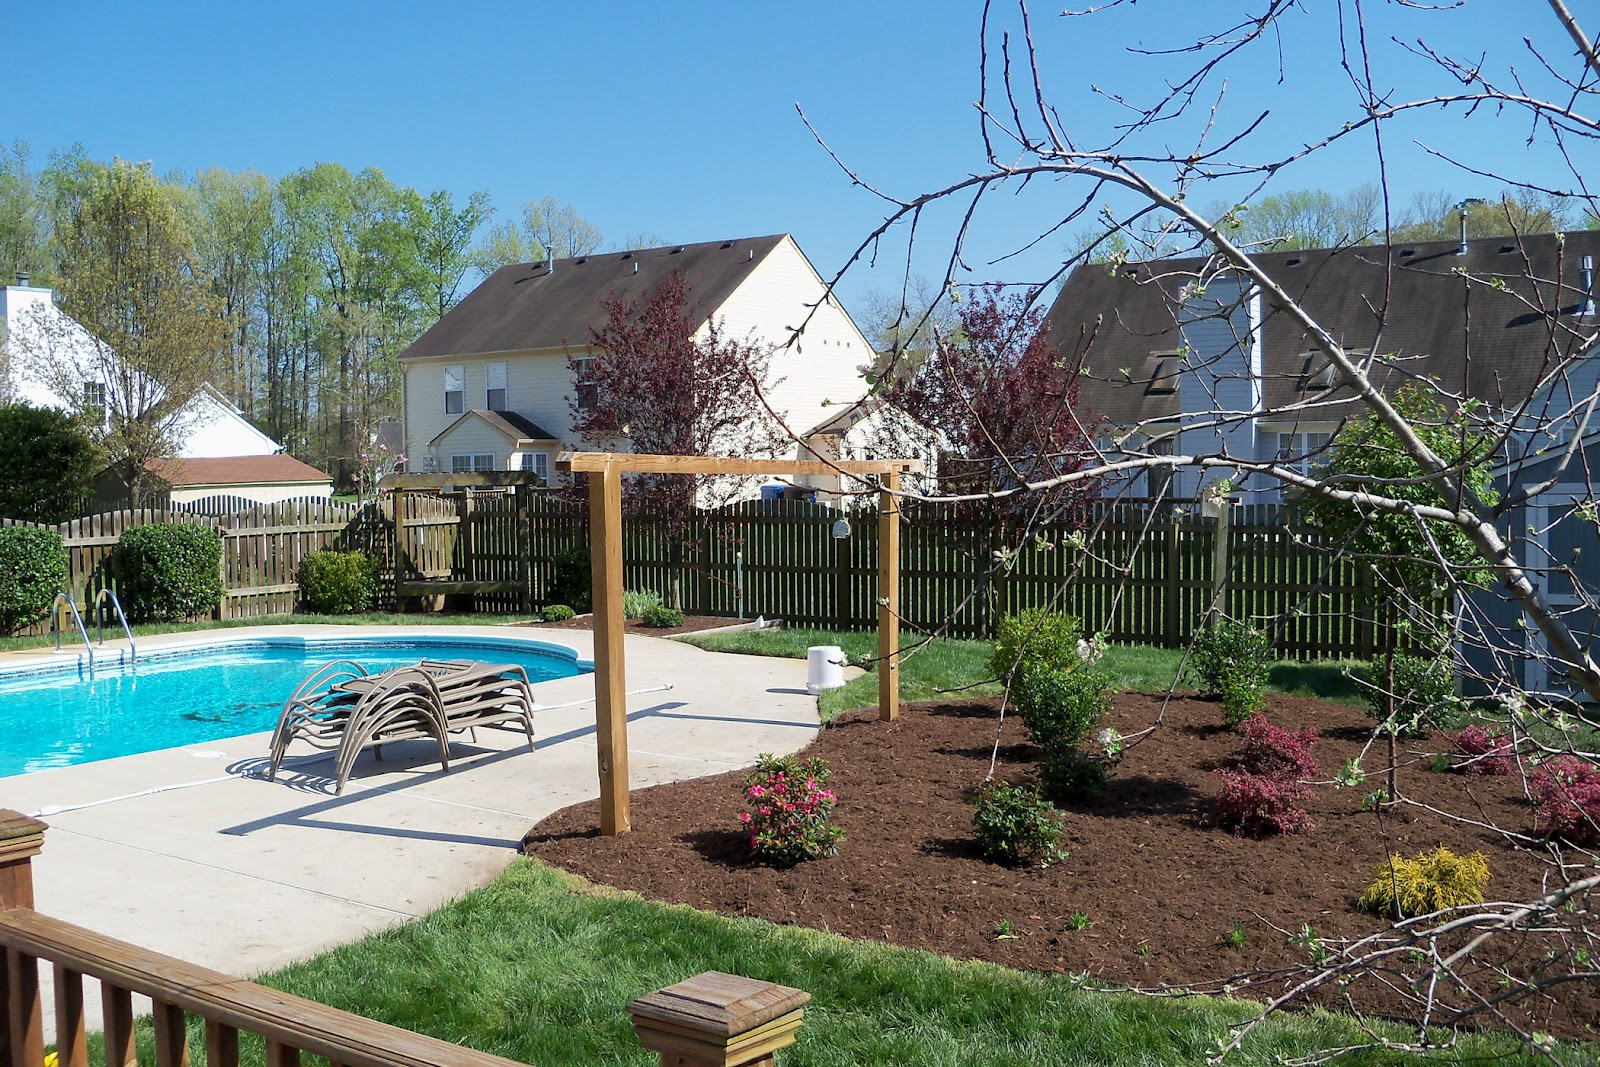 Dr dan 39 s garden tips enhancing your landscape with for Pool design virginia